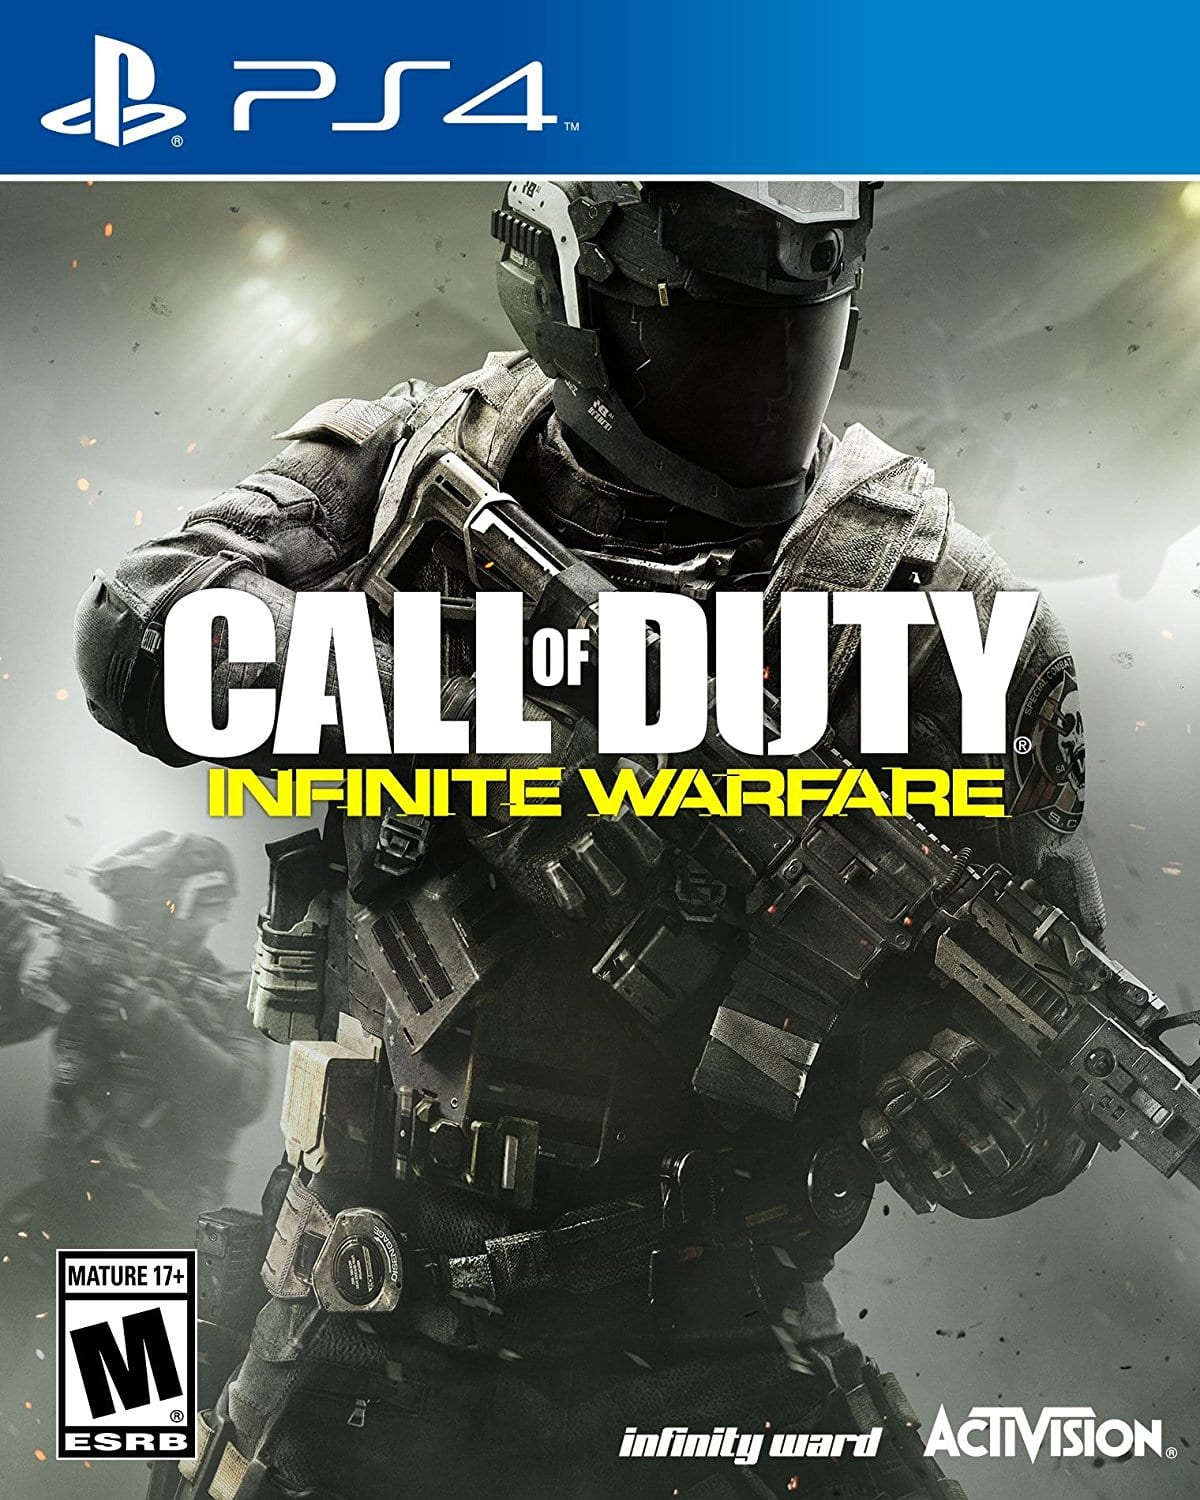 Call of Duty: Infinite Warfare - Standard Edition - PlayStation 4 19.99$